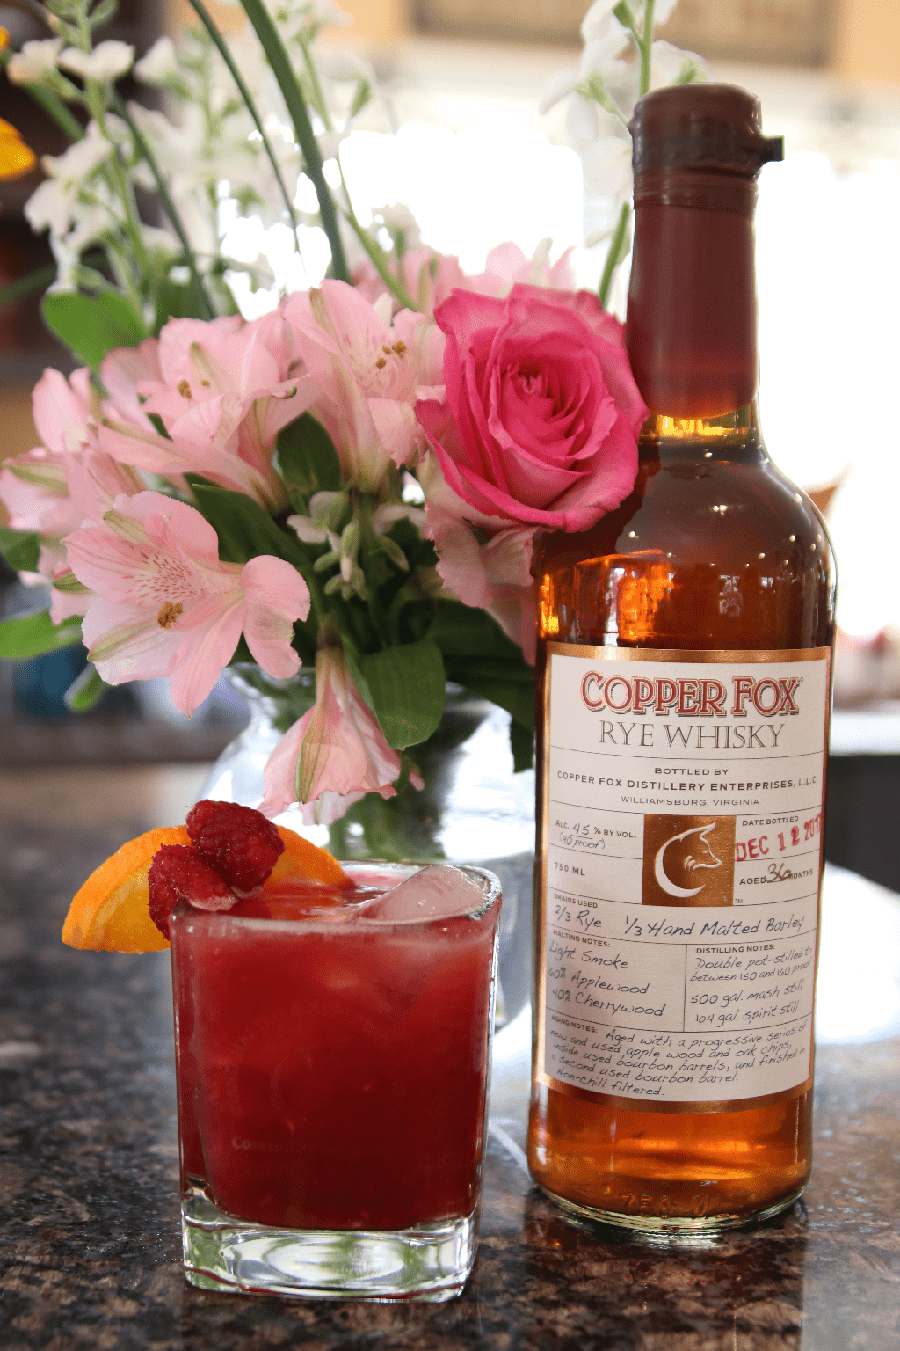 A bottle of Copper Fox Rye Whiskey